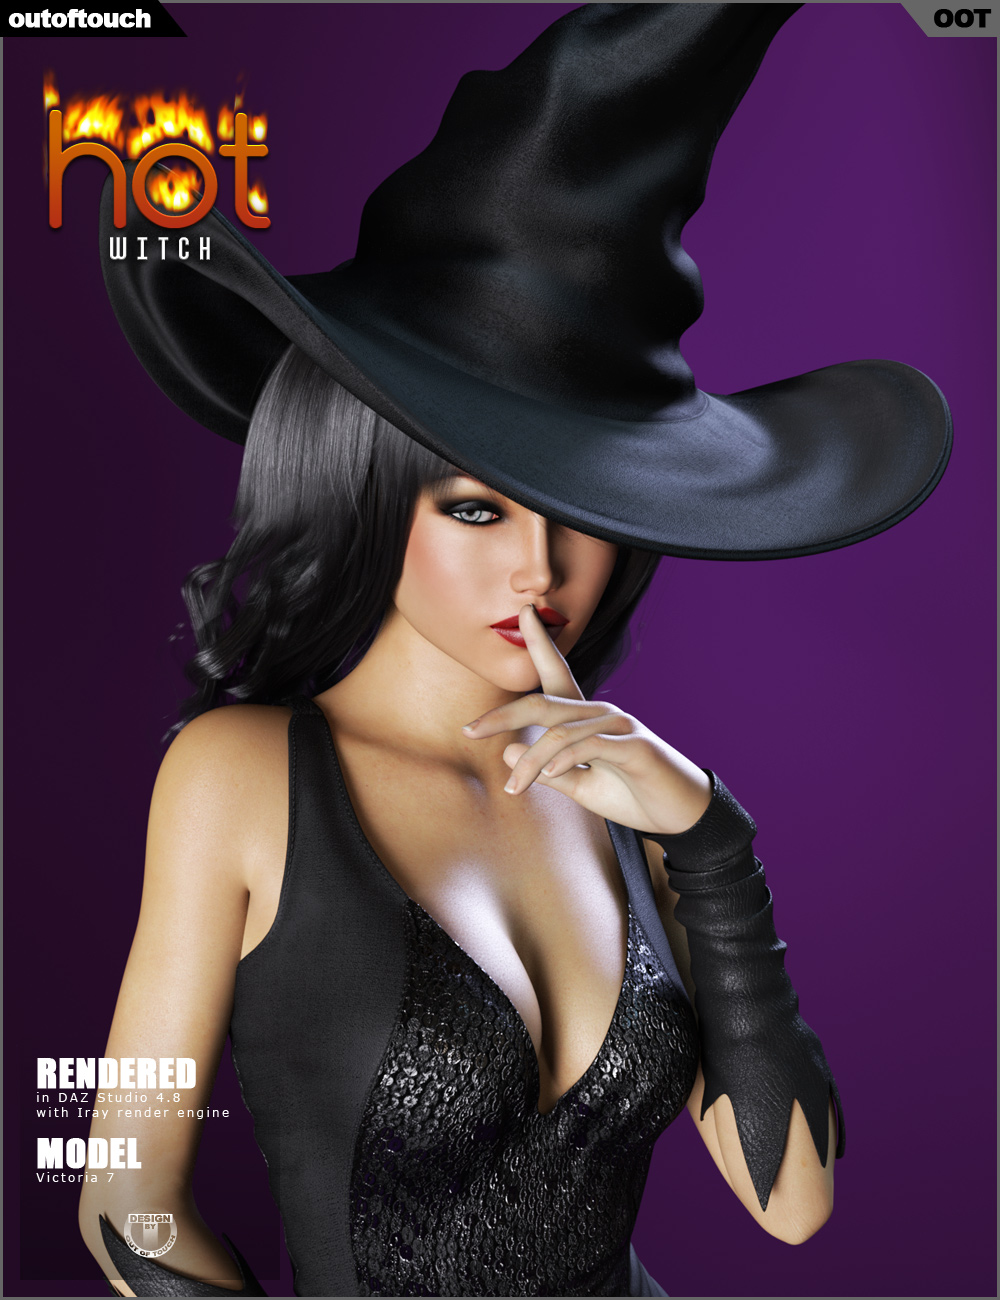 Hot Witch For Genesis 3 Female S 3d Figure Assets Outoftouch